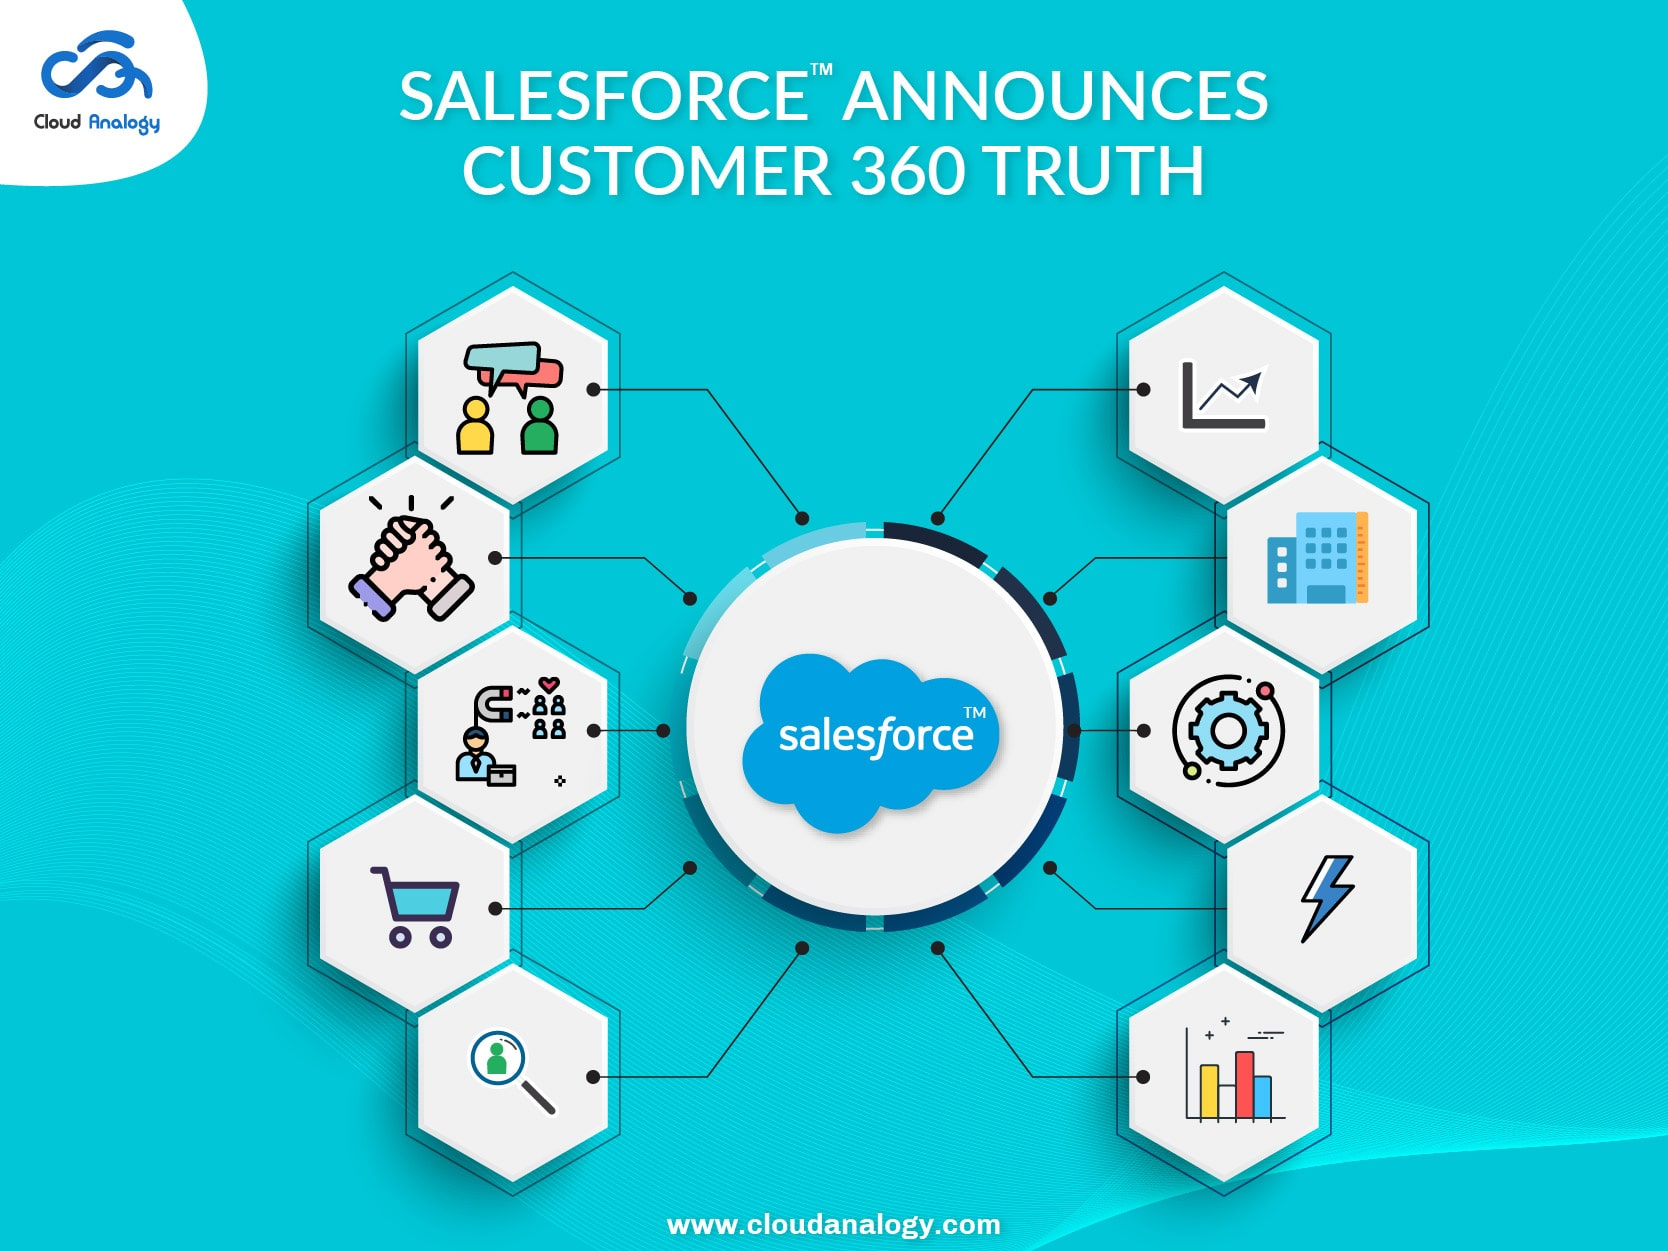 Salesforce Announces Customer 360 Truth